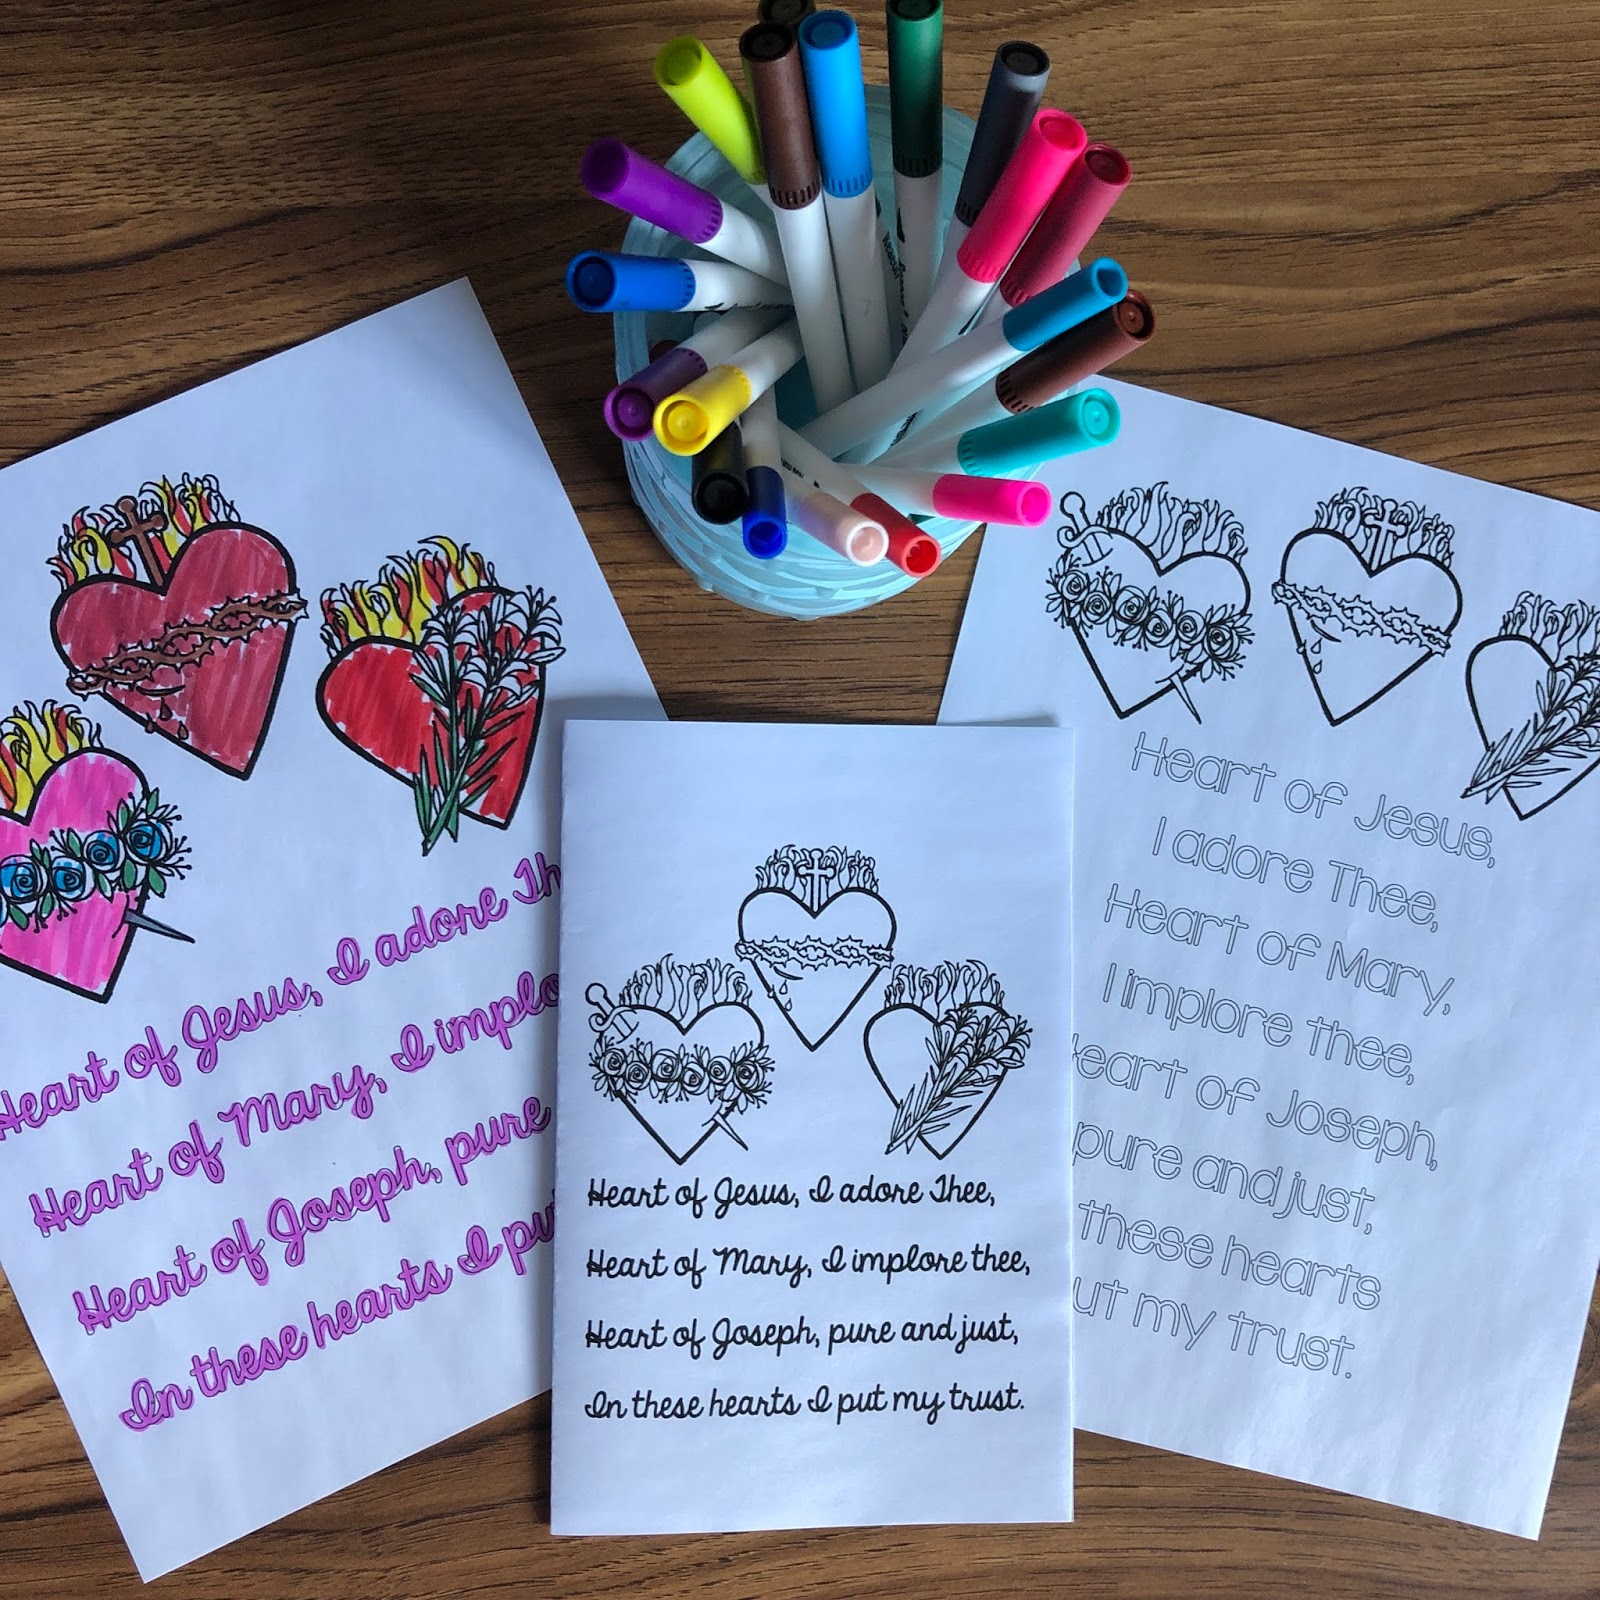 I Love You Coloring Pages to Print - Get Coloring Pages   1600x1600